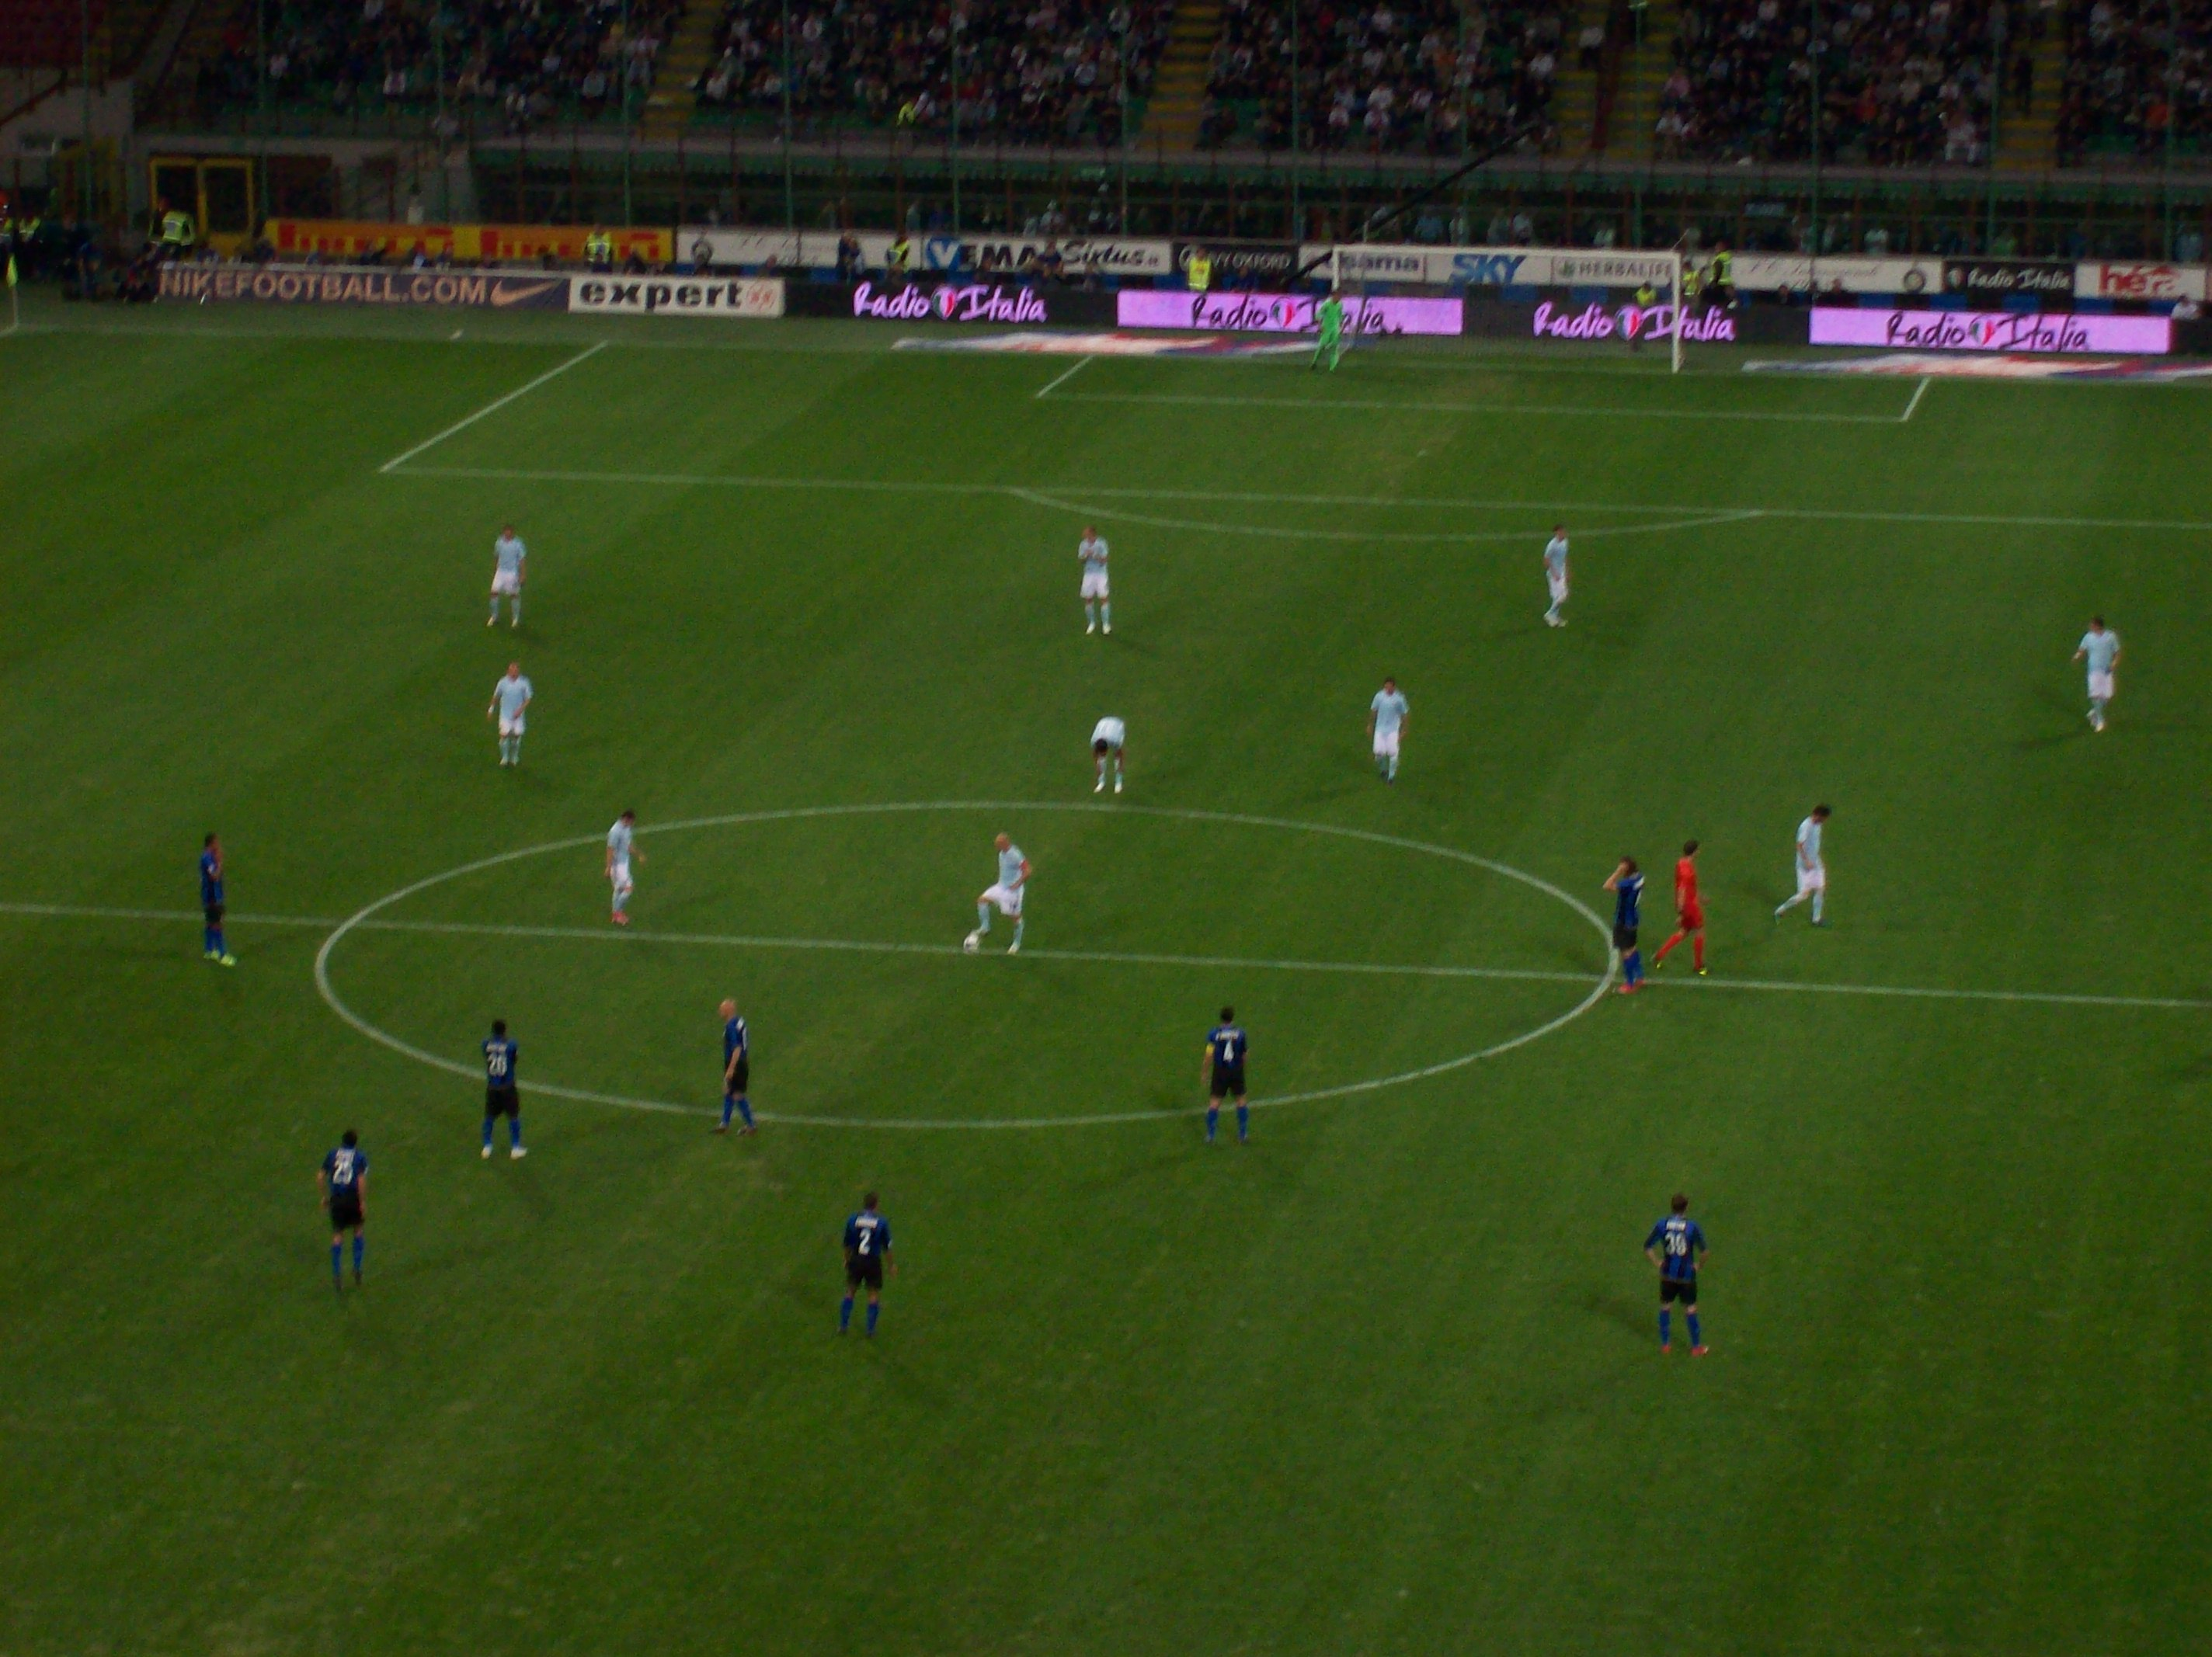 calcio - photo #16